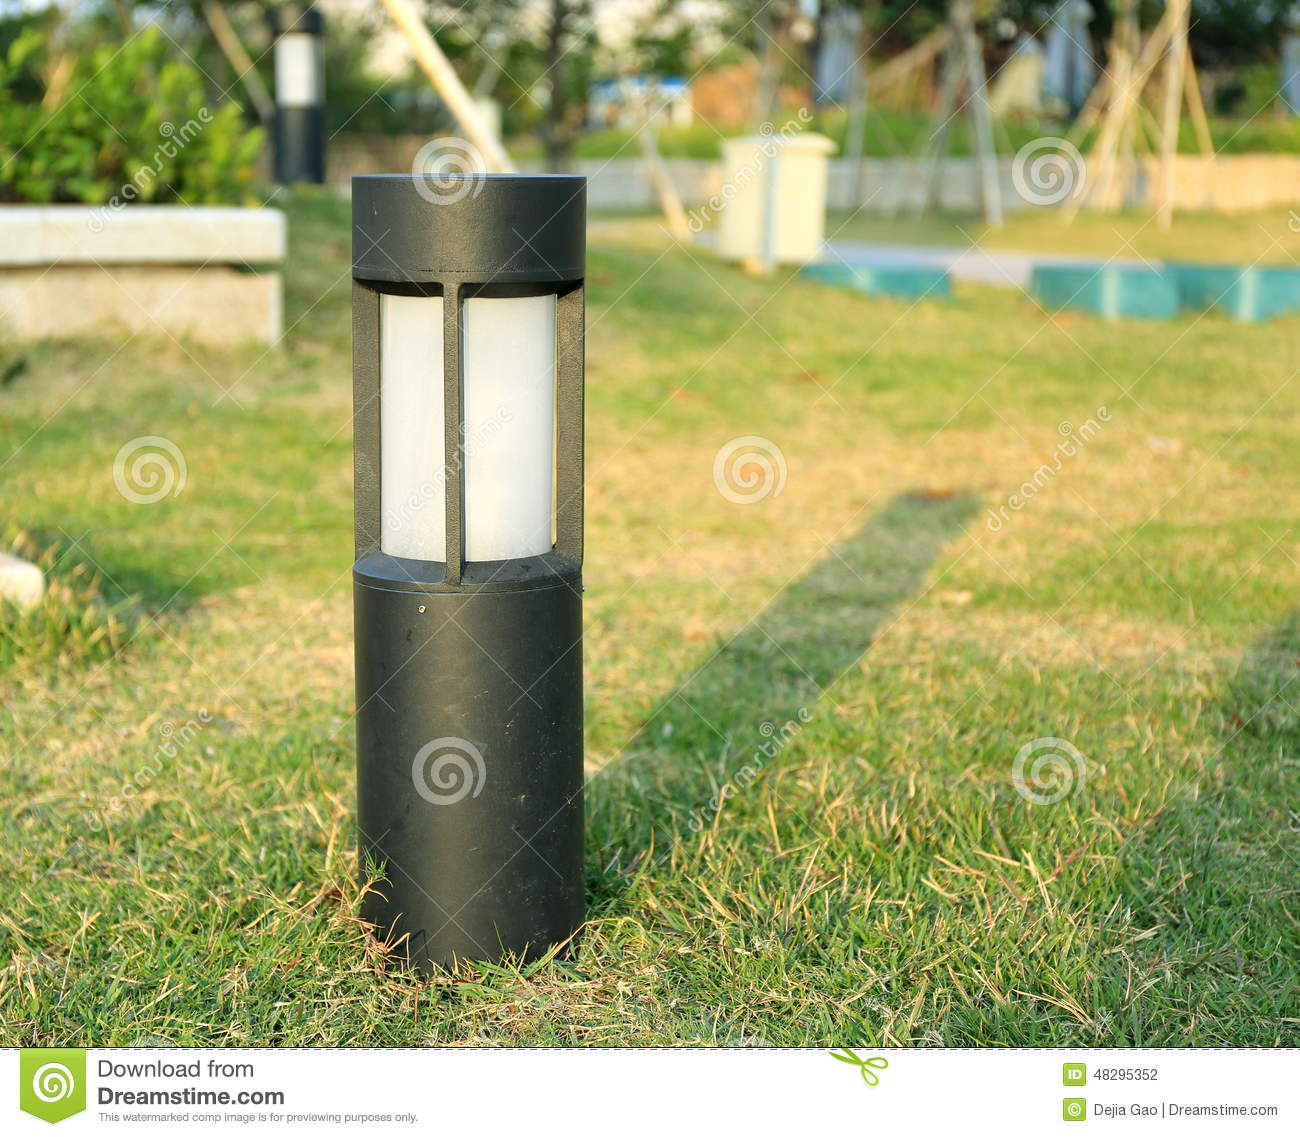 Lawn lamp landscape lighting outdoor garden light stock image lawn lamp outdoor light garden landscape lighting stock photography mozeypictures Images